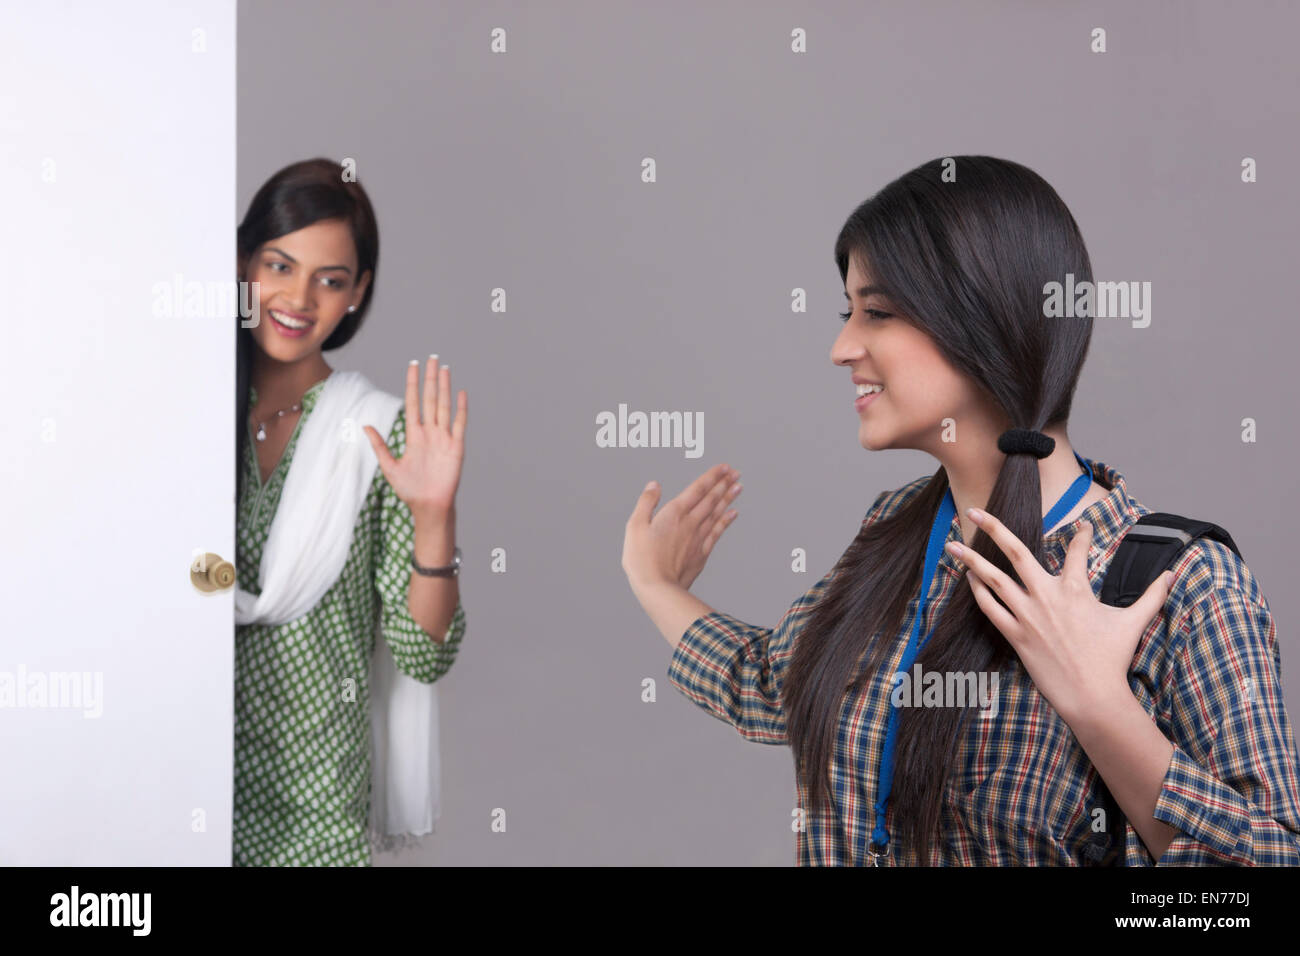 Elder sister saying bye to younger sister - Stock Image